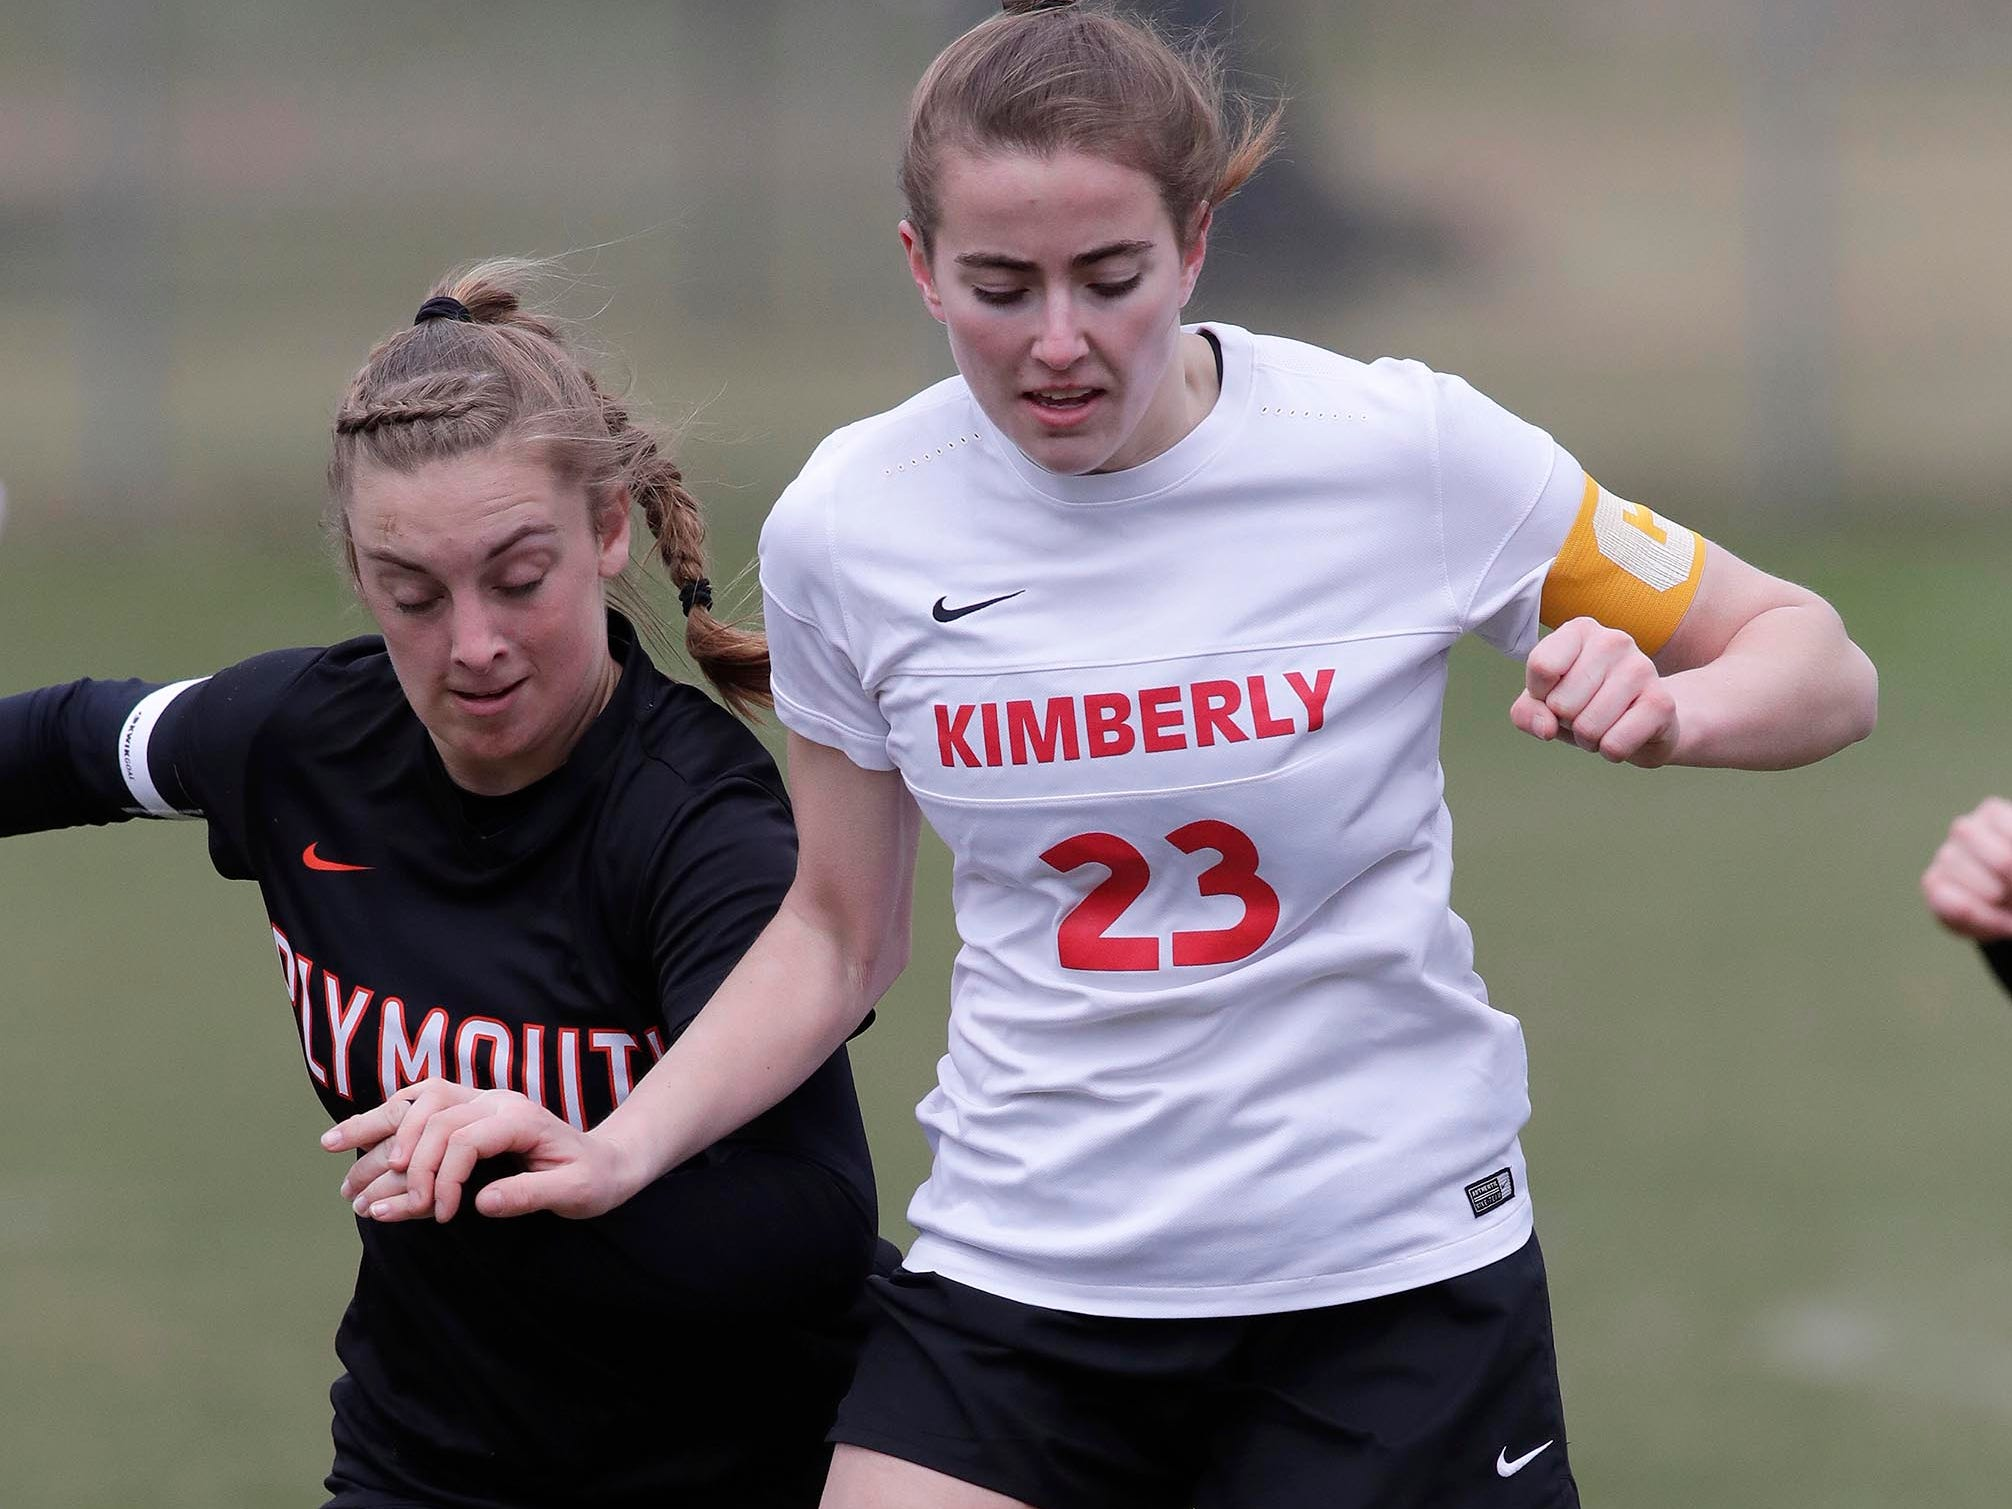 Plymouth's Dallas Kreisa (23, left) and Kimberly's Els Twombly (23) work the ball, Saturday, April 13, 2019, in Plymouth, Wis.